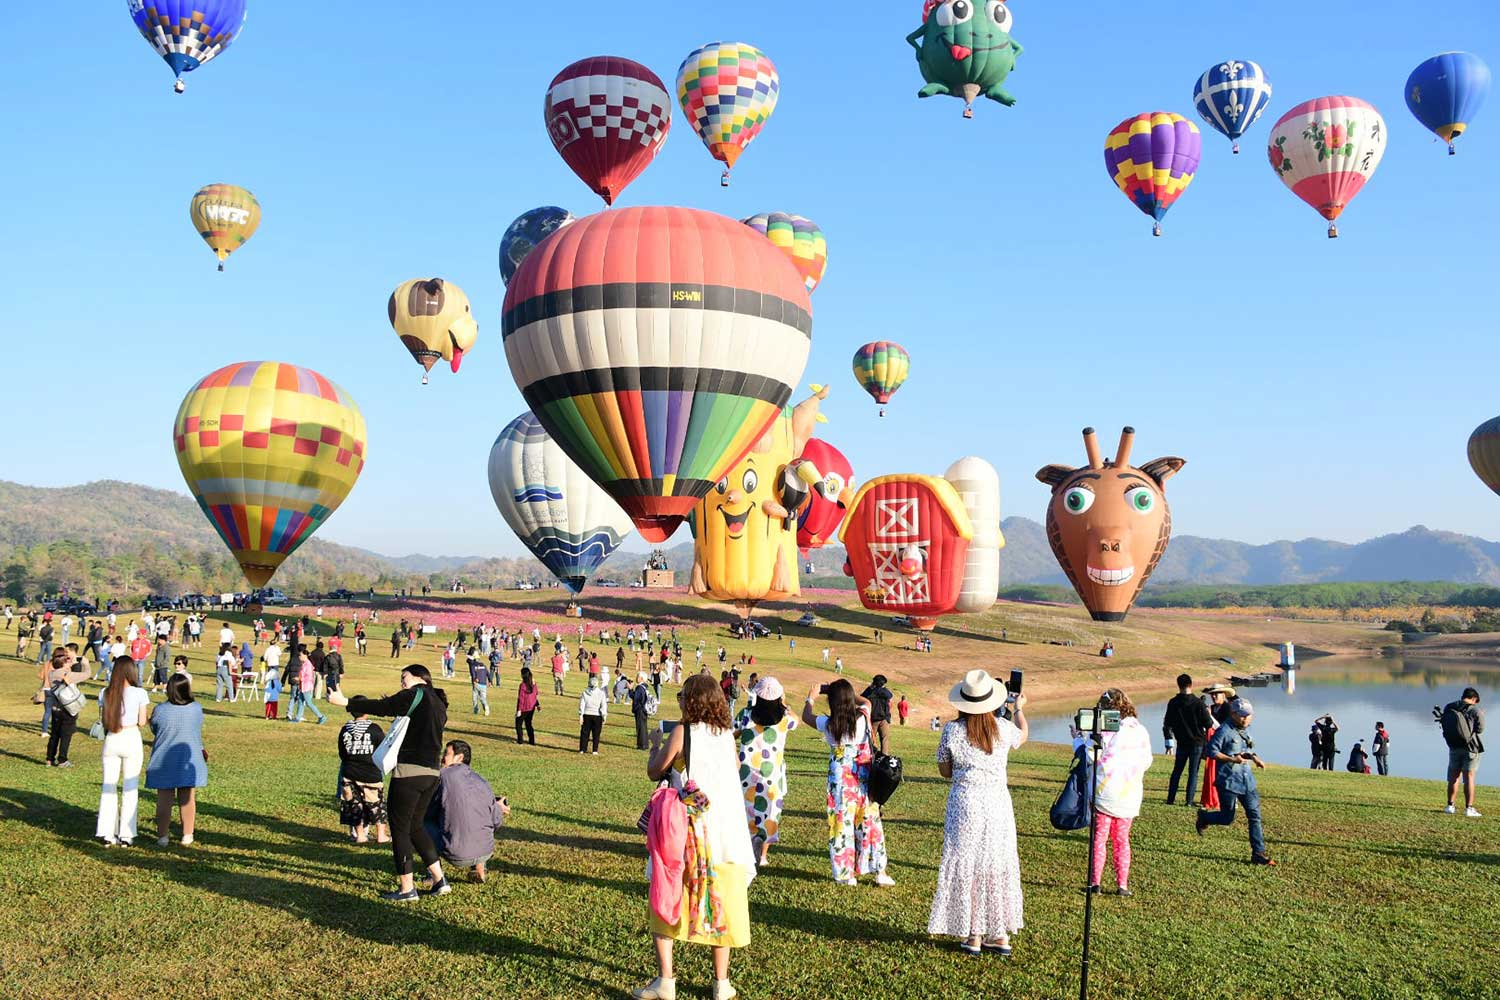 Twenty-five couples tie the knot in hot-air balloons above Chiang Rai on Valentine's Day. (Photo by Chinpat Chaimon)